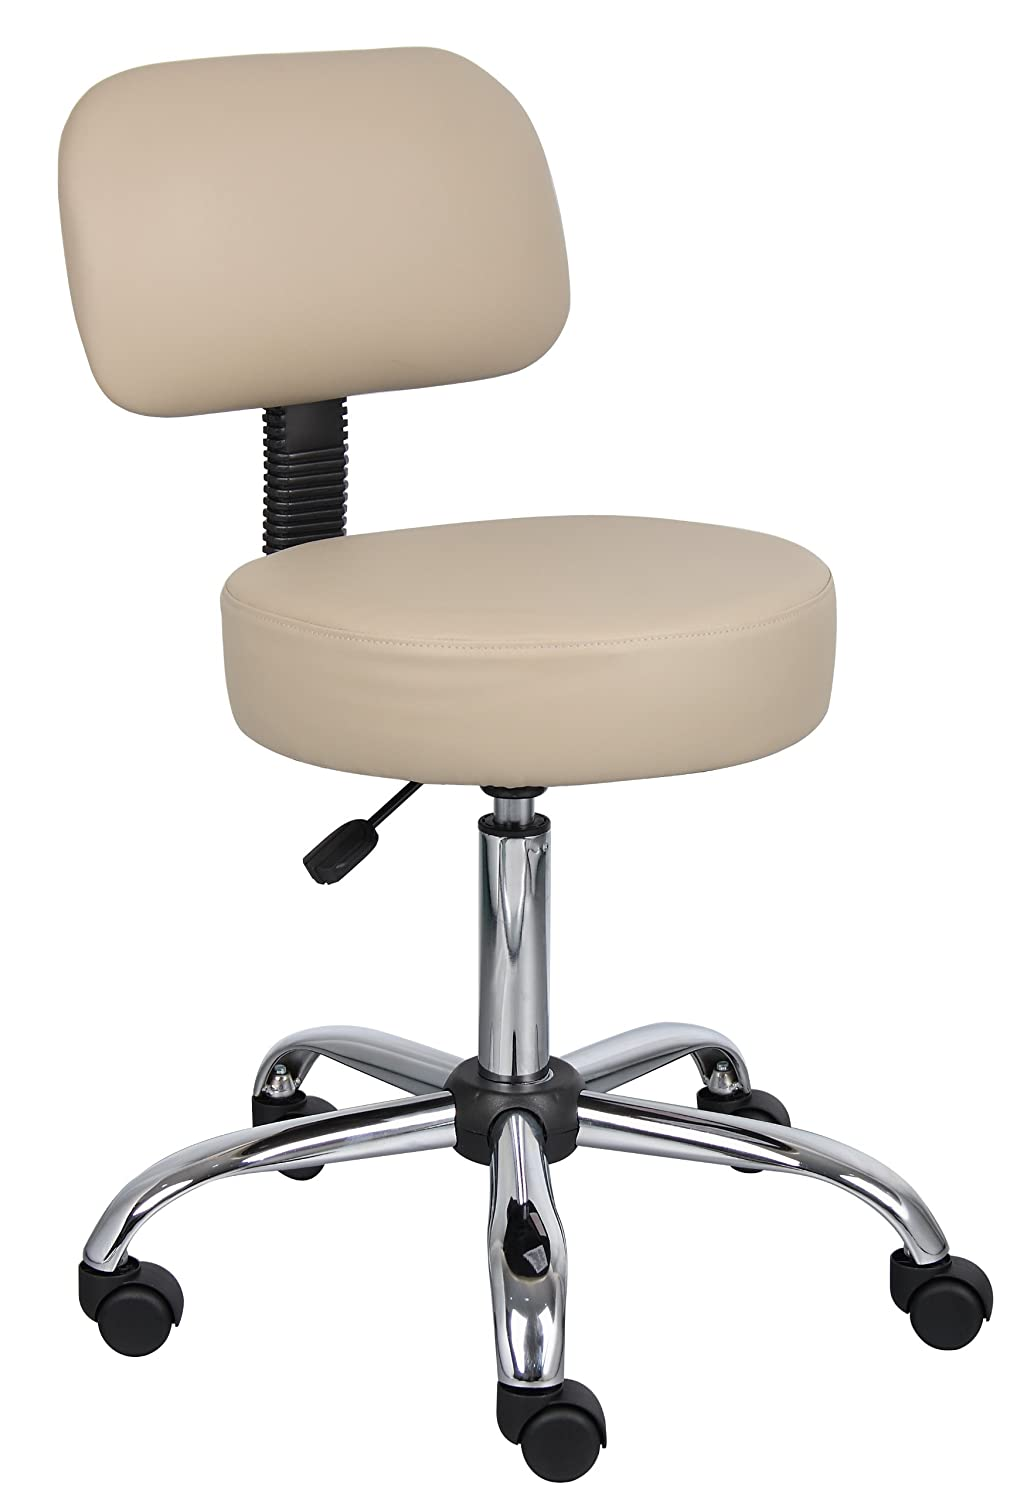 Doctor Caressoft Chair Stool Lab Medical Office Furniture